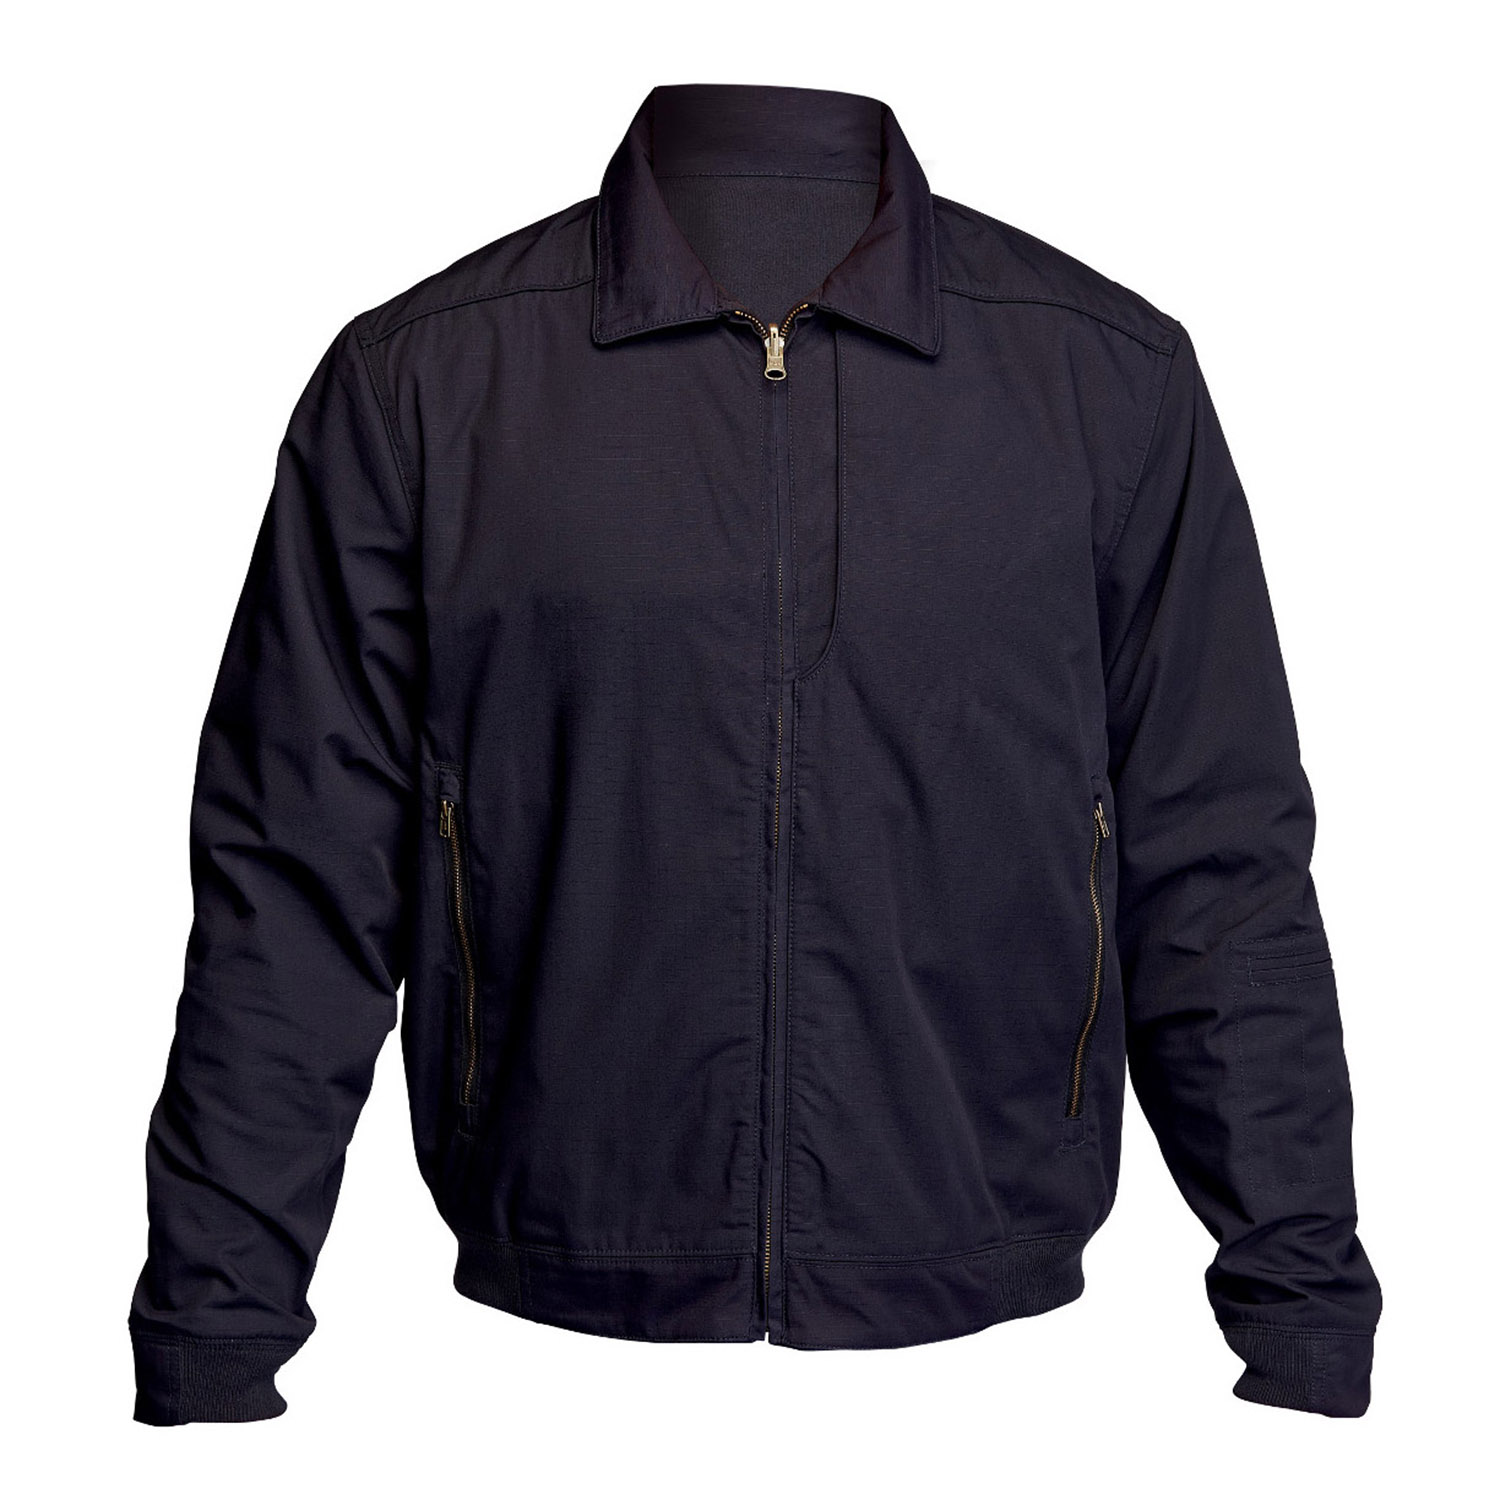 5.11 Tactical Taclite Reversible Company Jacket